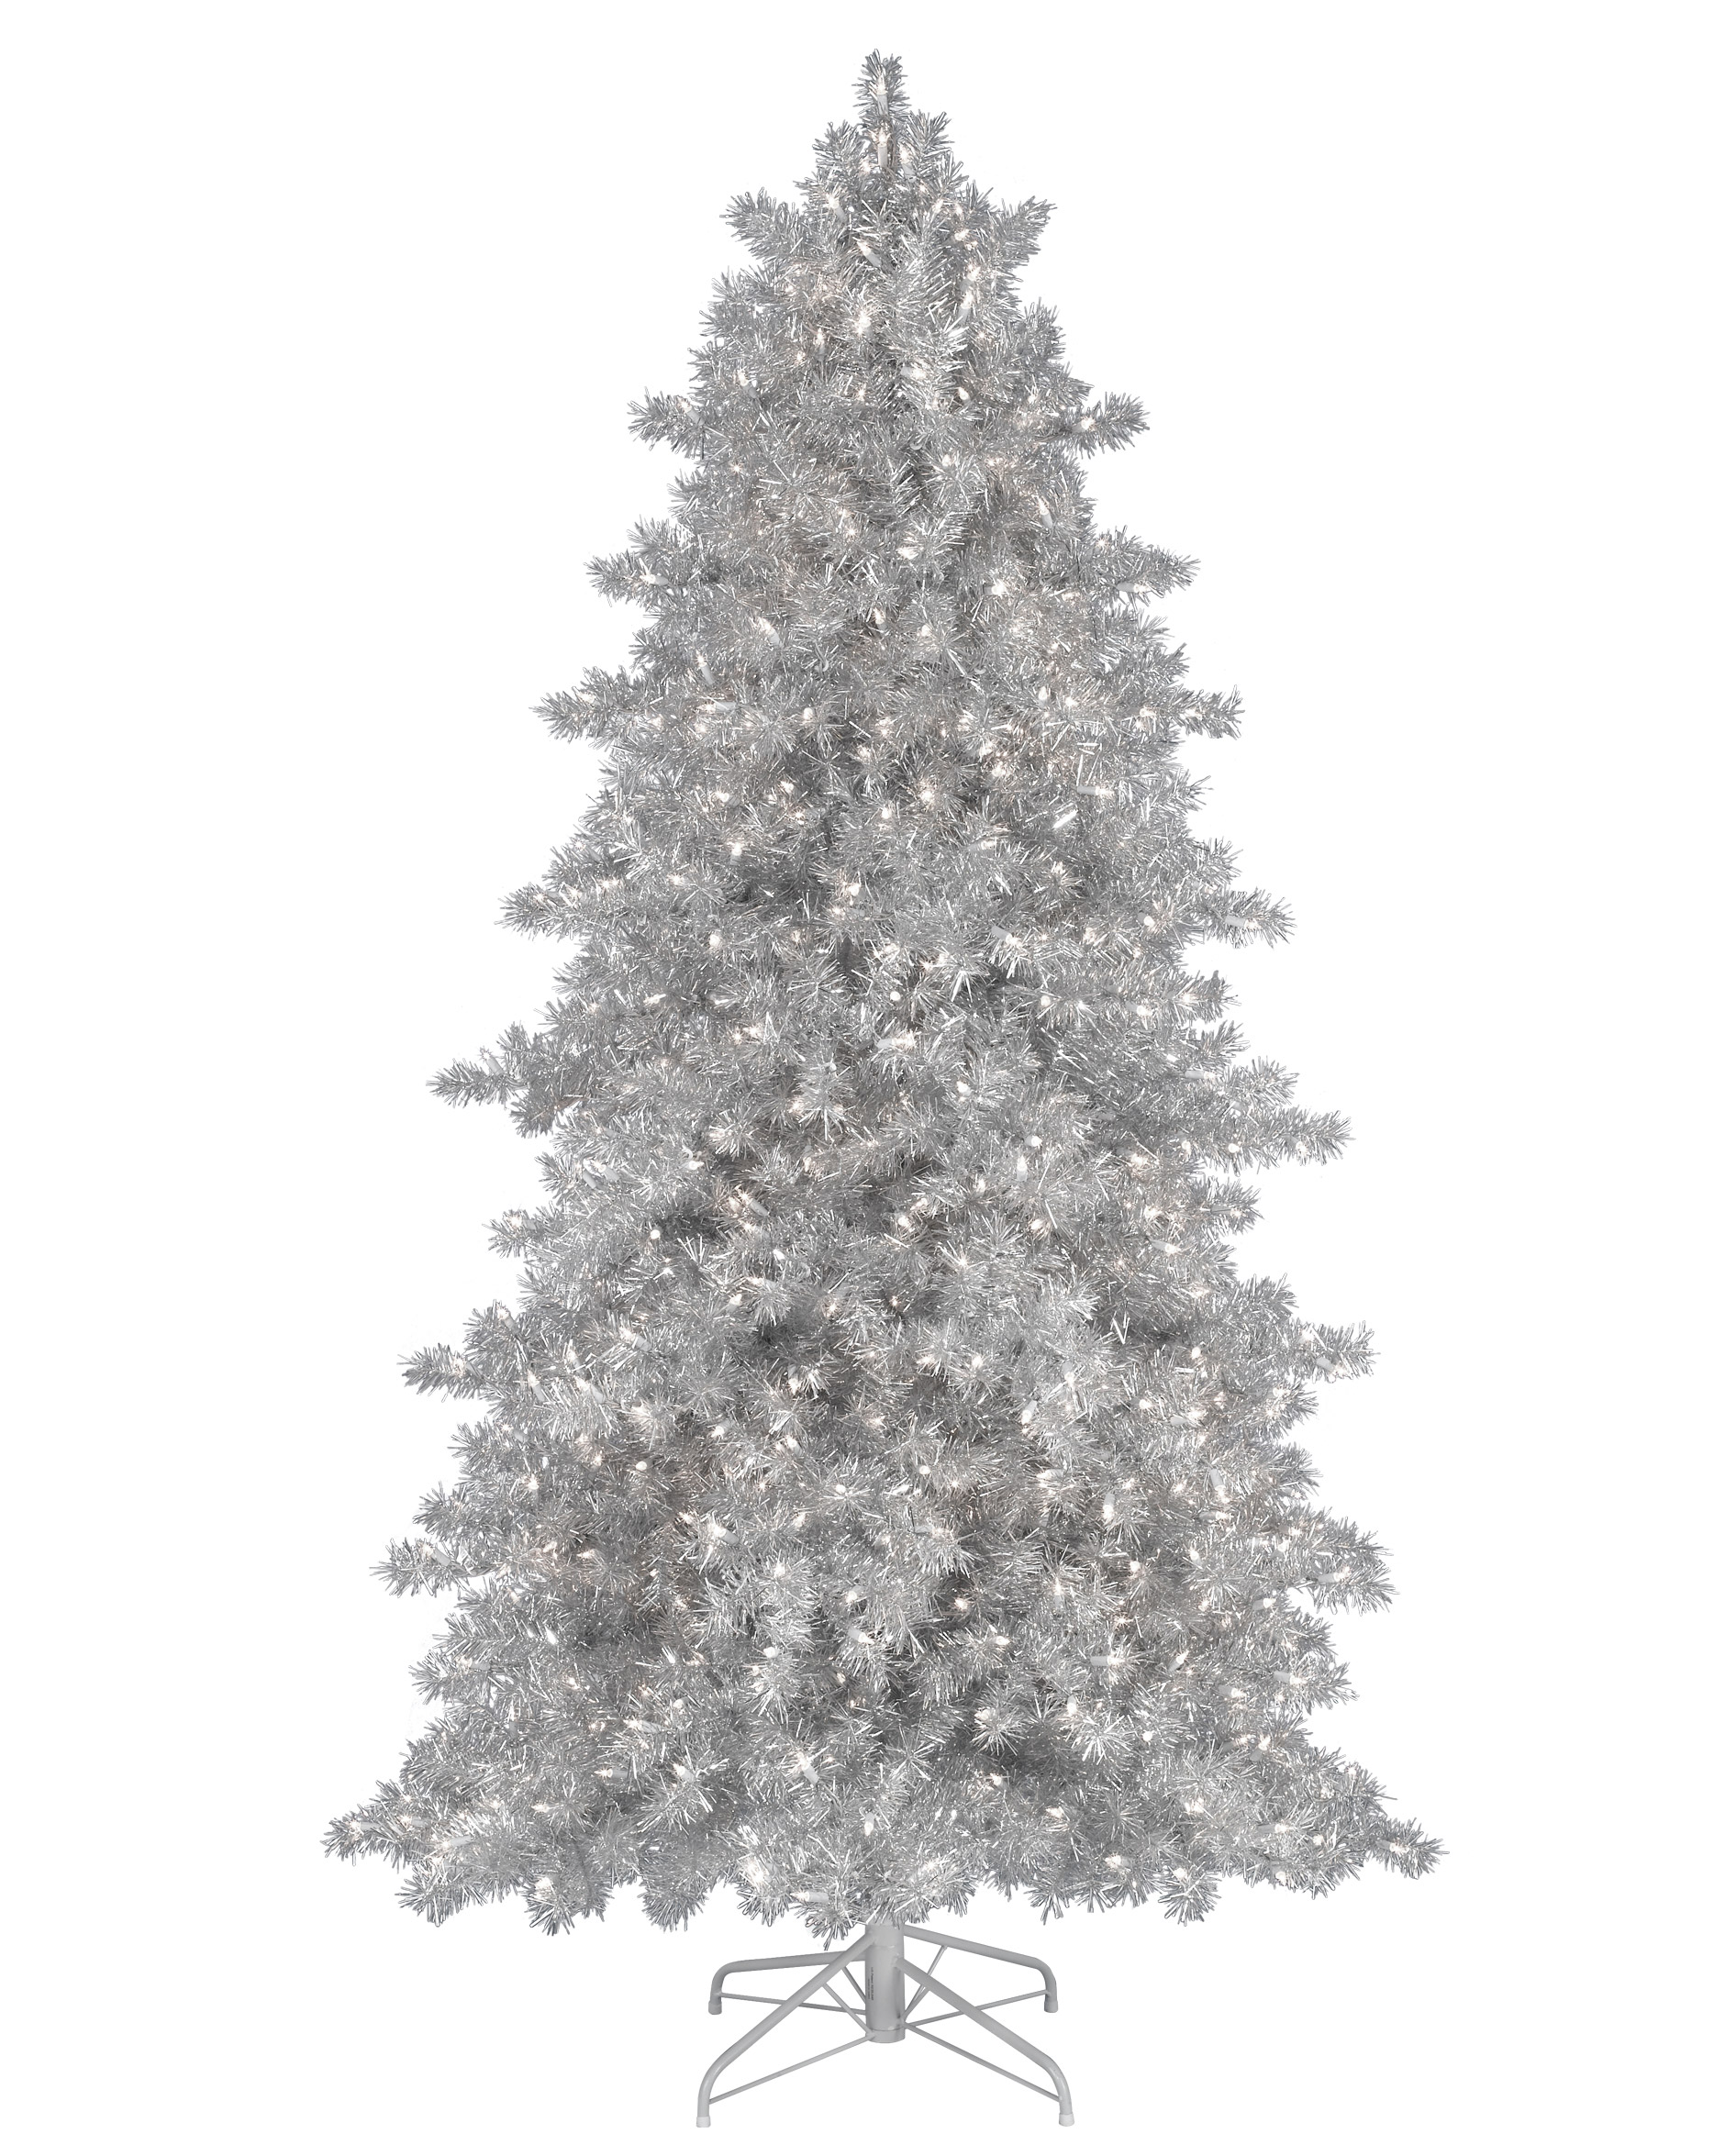 5' Narrow Silver Tinsel Tree with Clear Lights | Christmas Tree Market